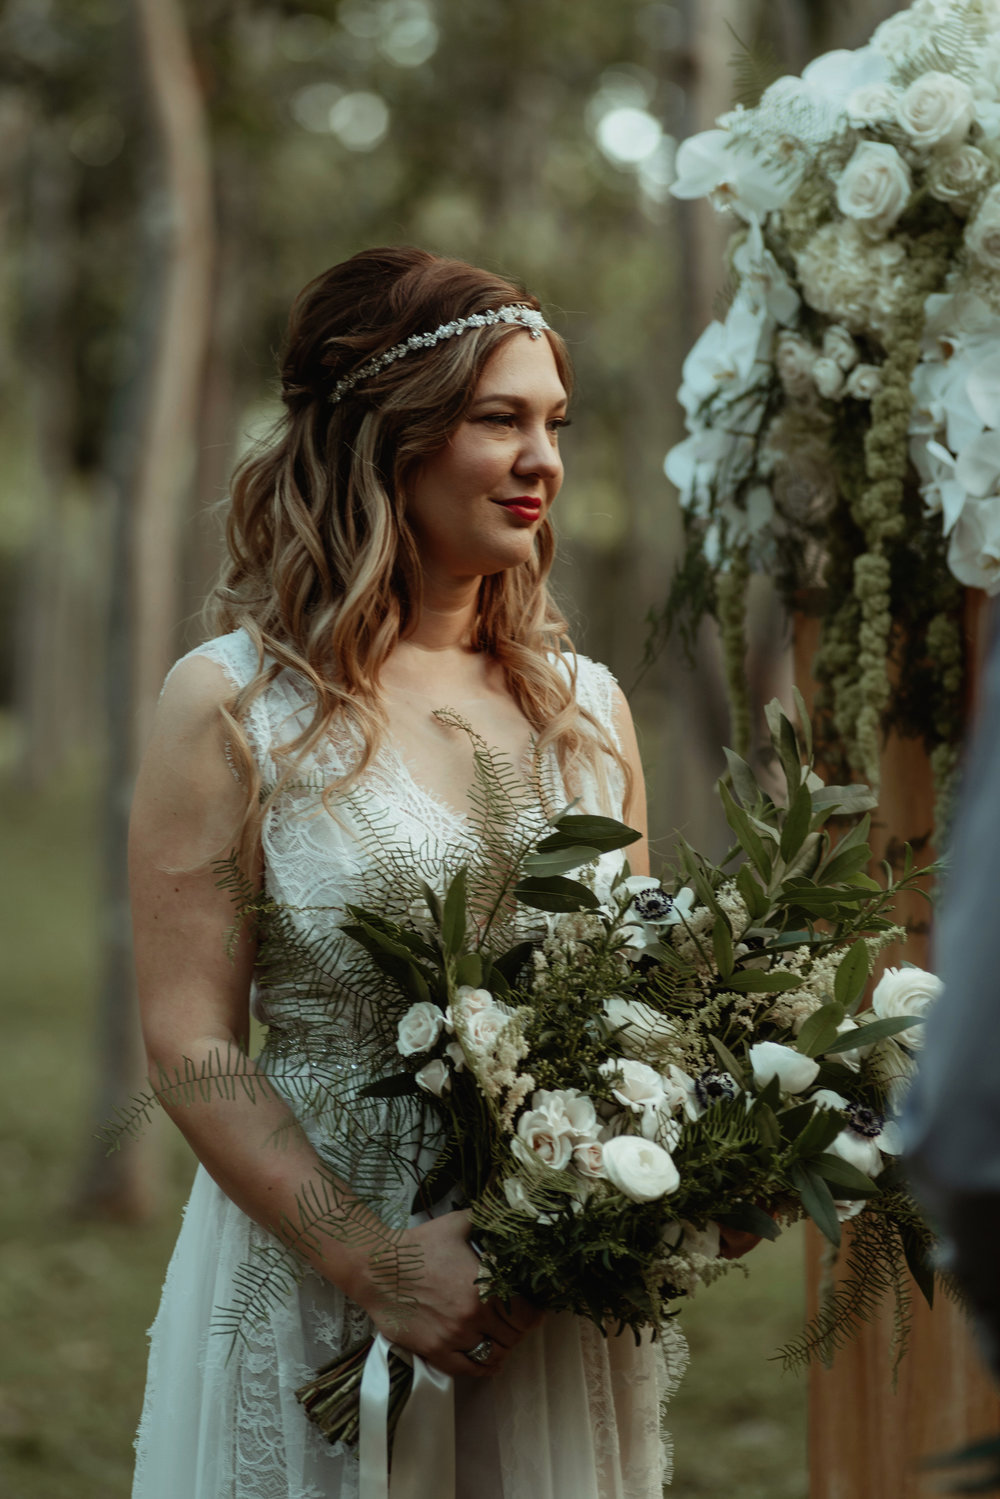 A Beautiful Boho Bride